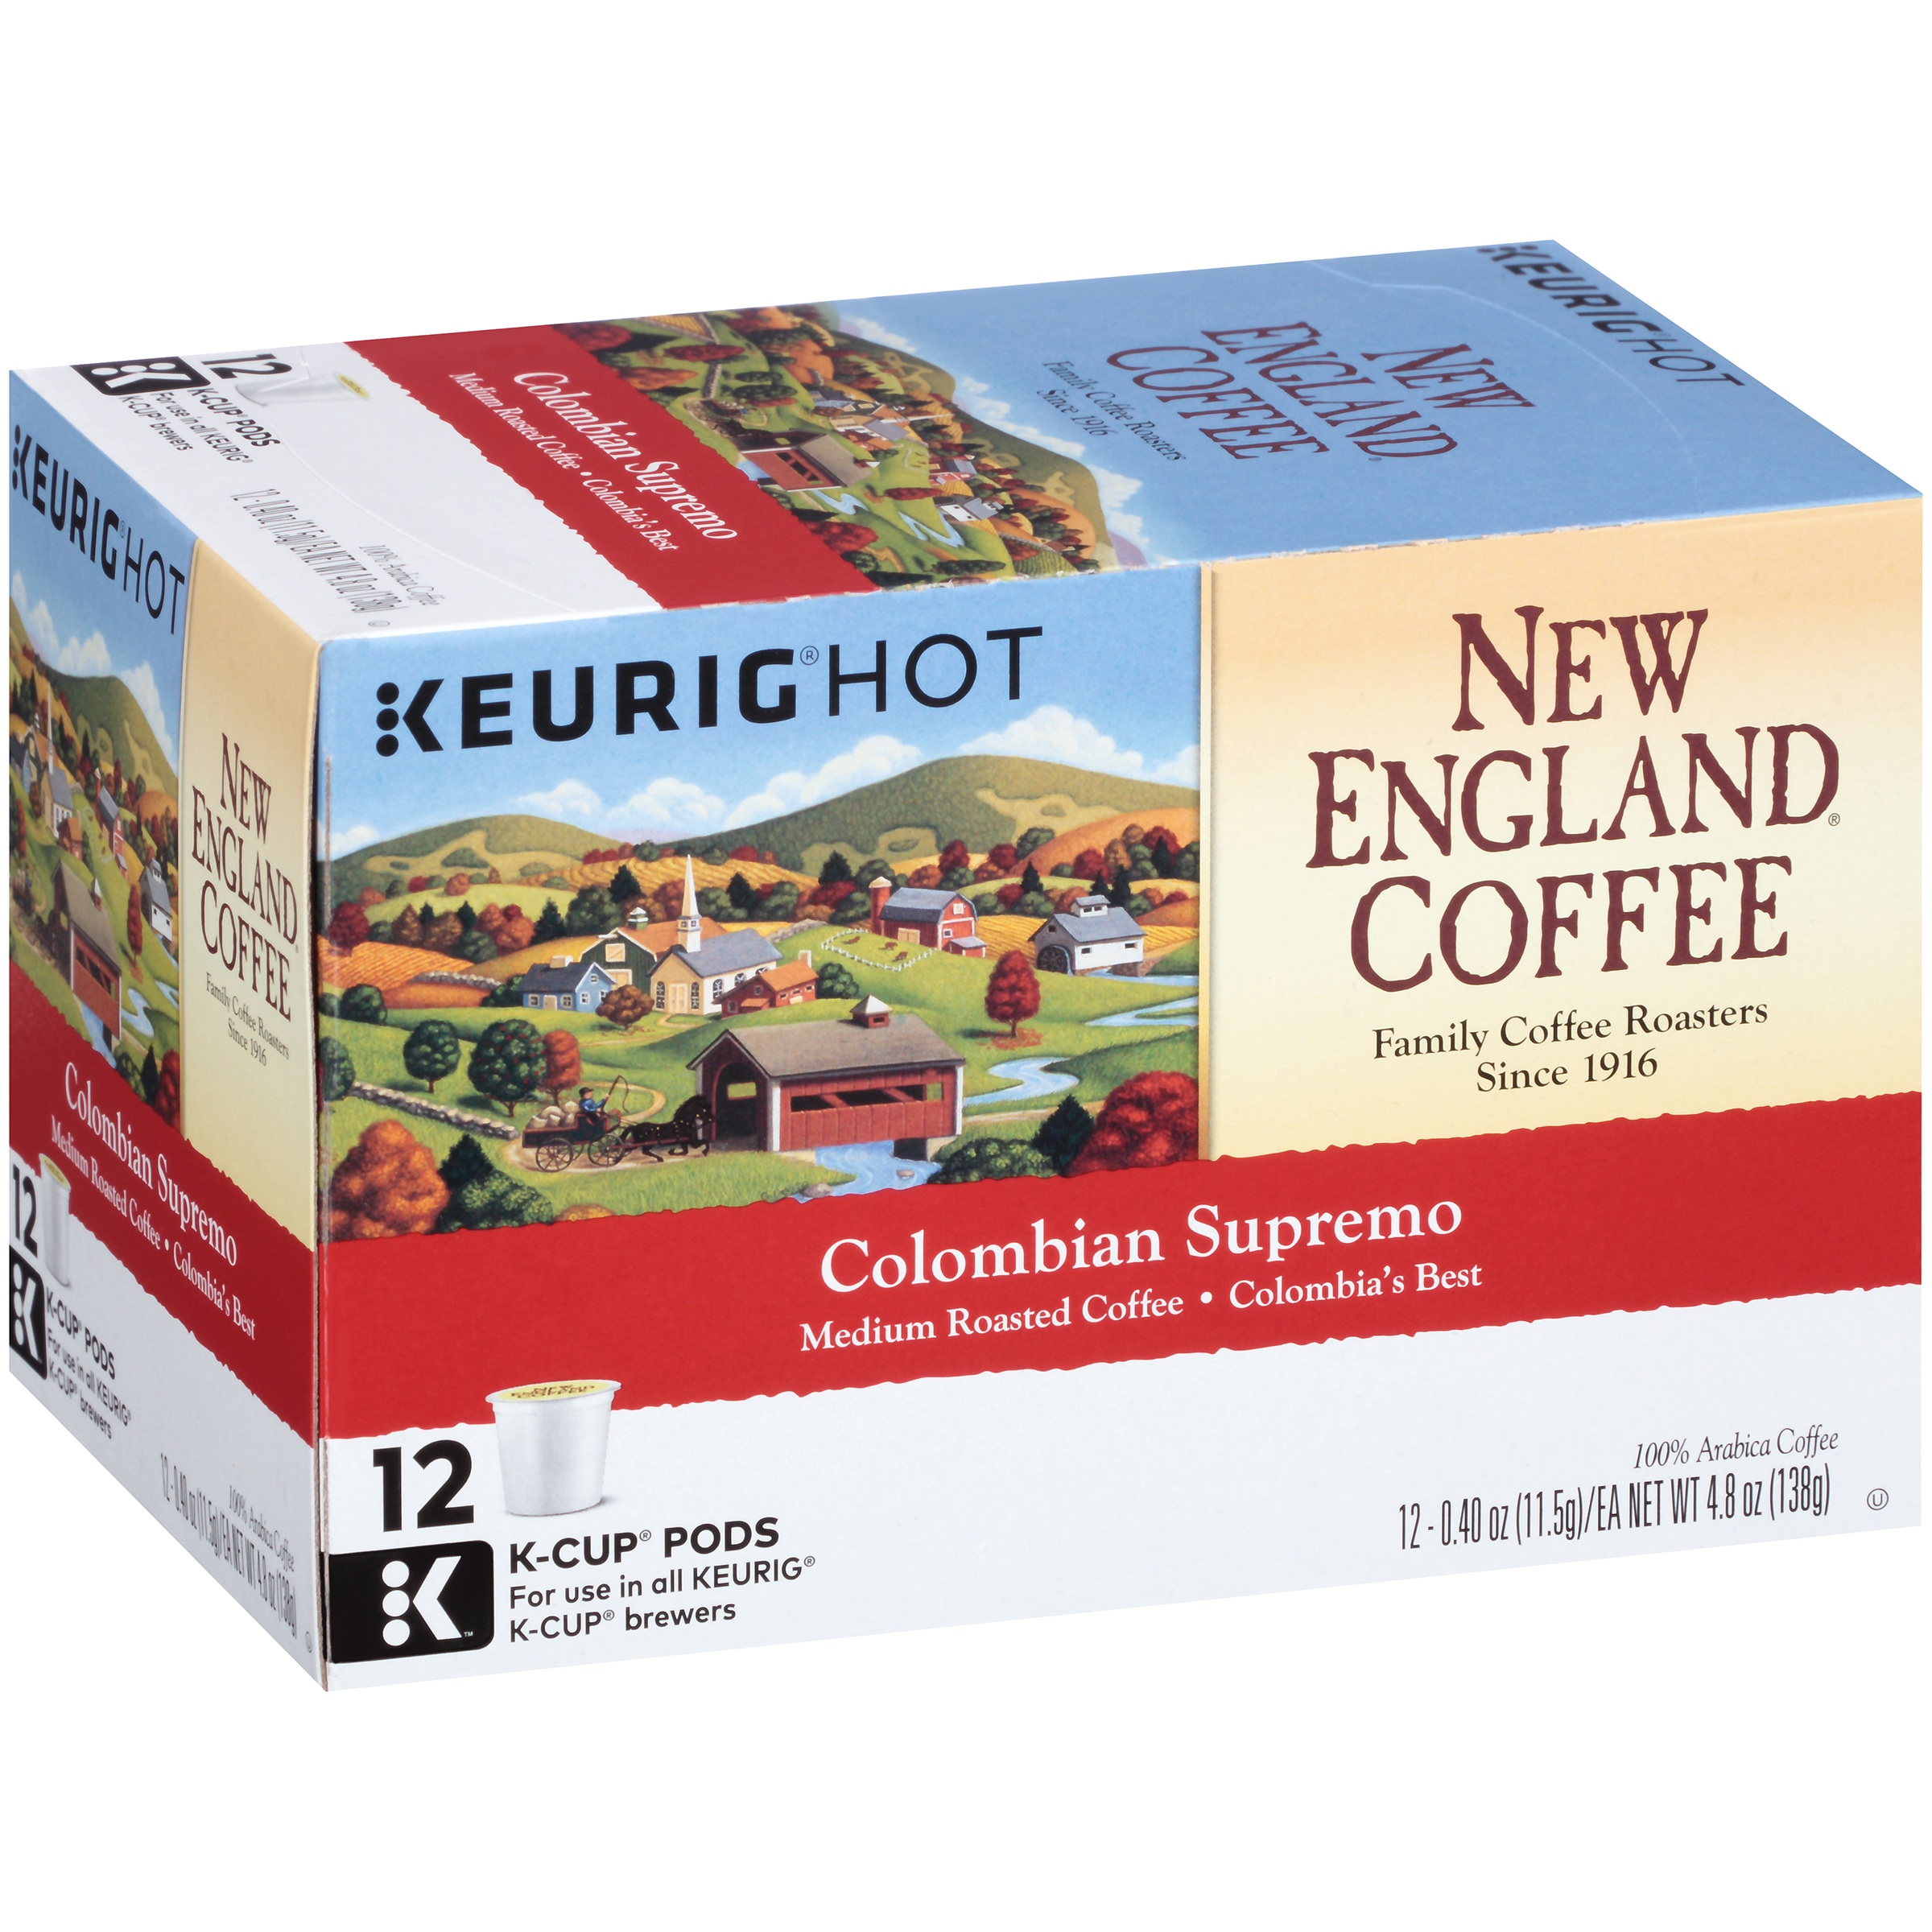 New England Coffee® Keurig® Hot Colombian Supremo 12-0.40 oz. Cups